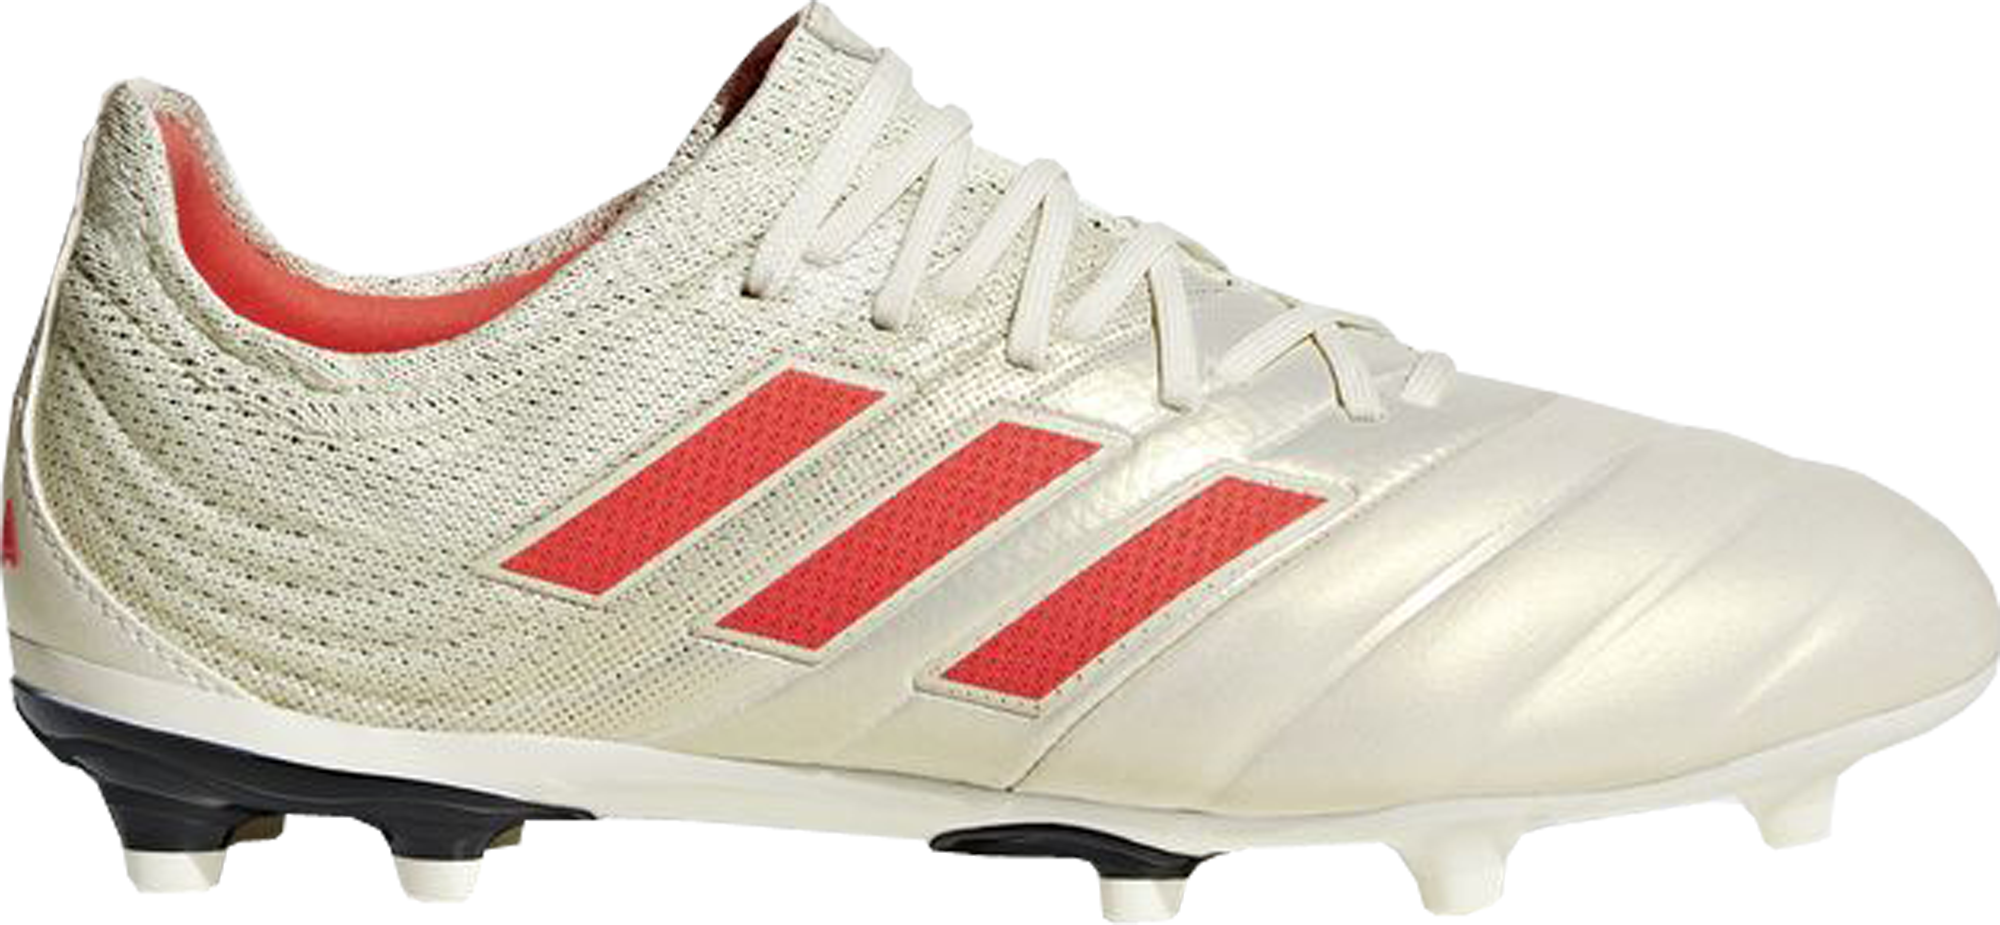 adidas Copa 19.1 Firm Ground Cleat Off